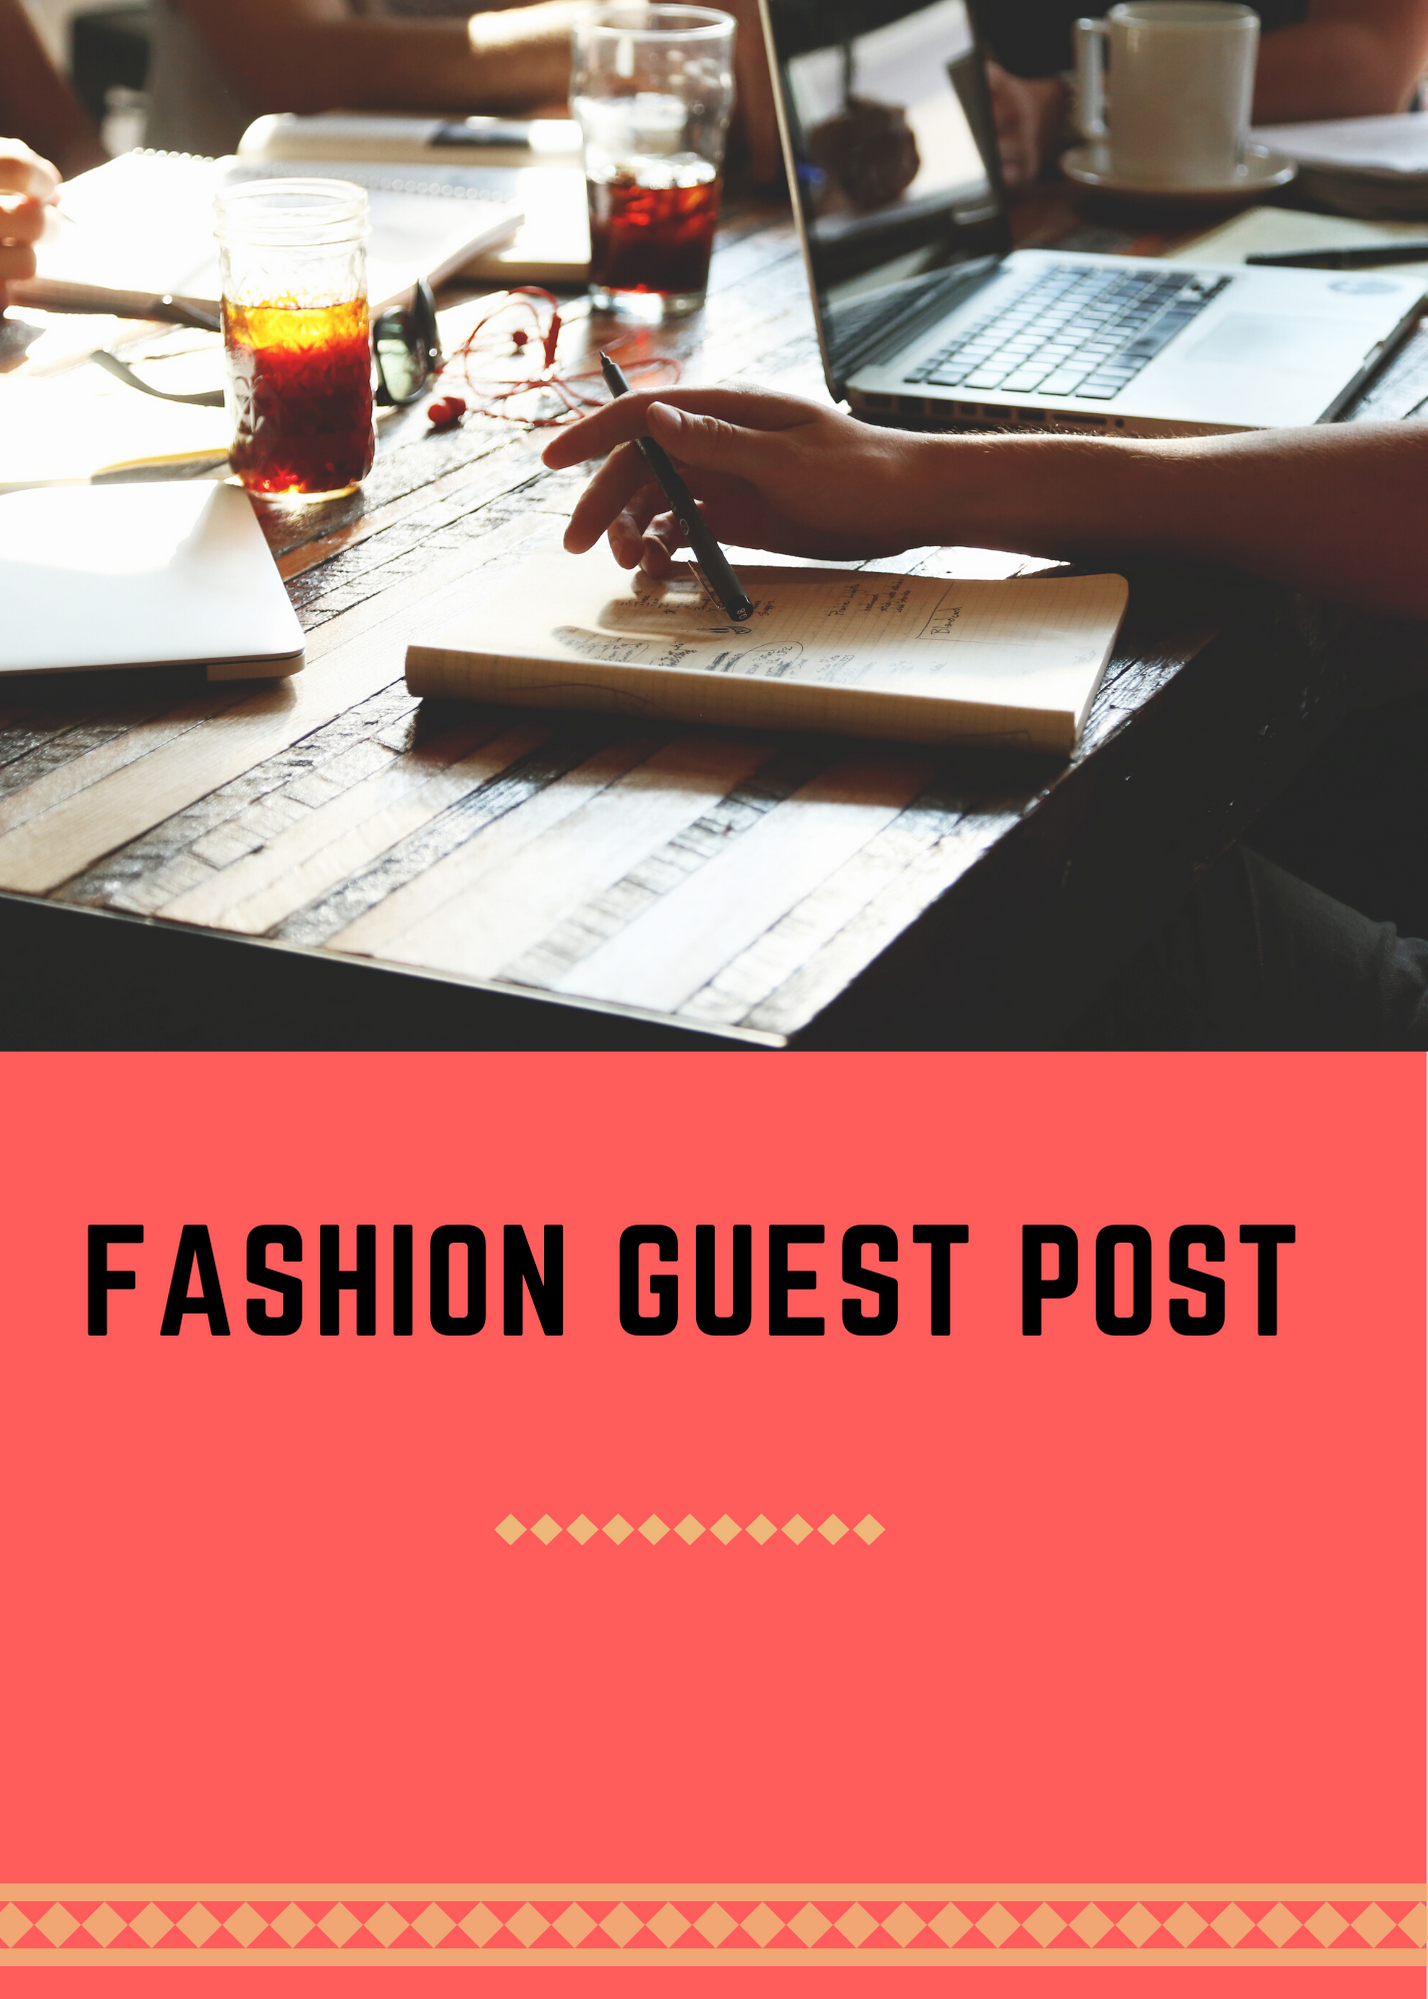 I will guest post on fashion niche blog.